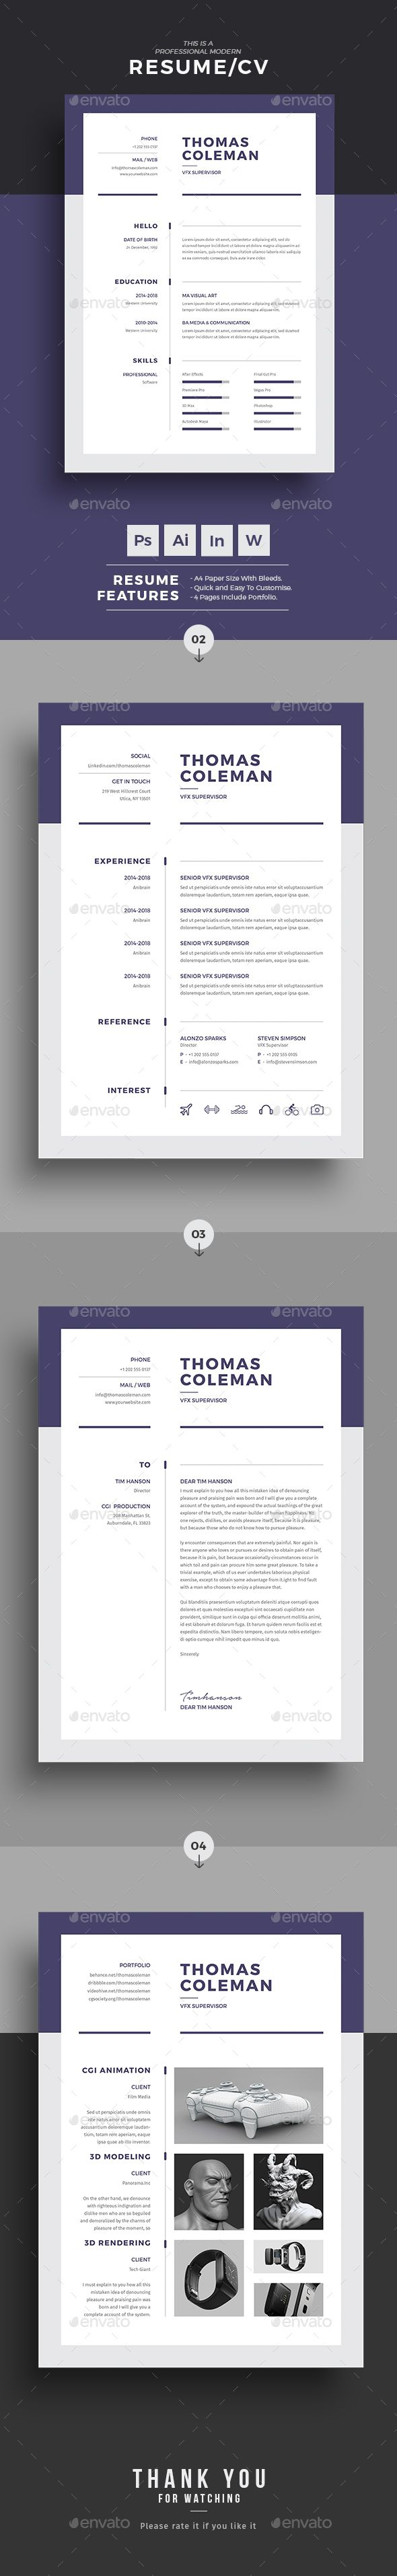 4 Page Resume Template for C Class superstars. If the usual 2 page resume template is not working for you then this template is just for you. This even has a Portfolio page with matching cover letter format in word. Fully editable in Microsoft word. Print ready, easy to customize with free customization tutorials. Ideal for Creative People. Instant Download.